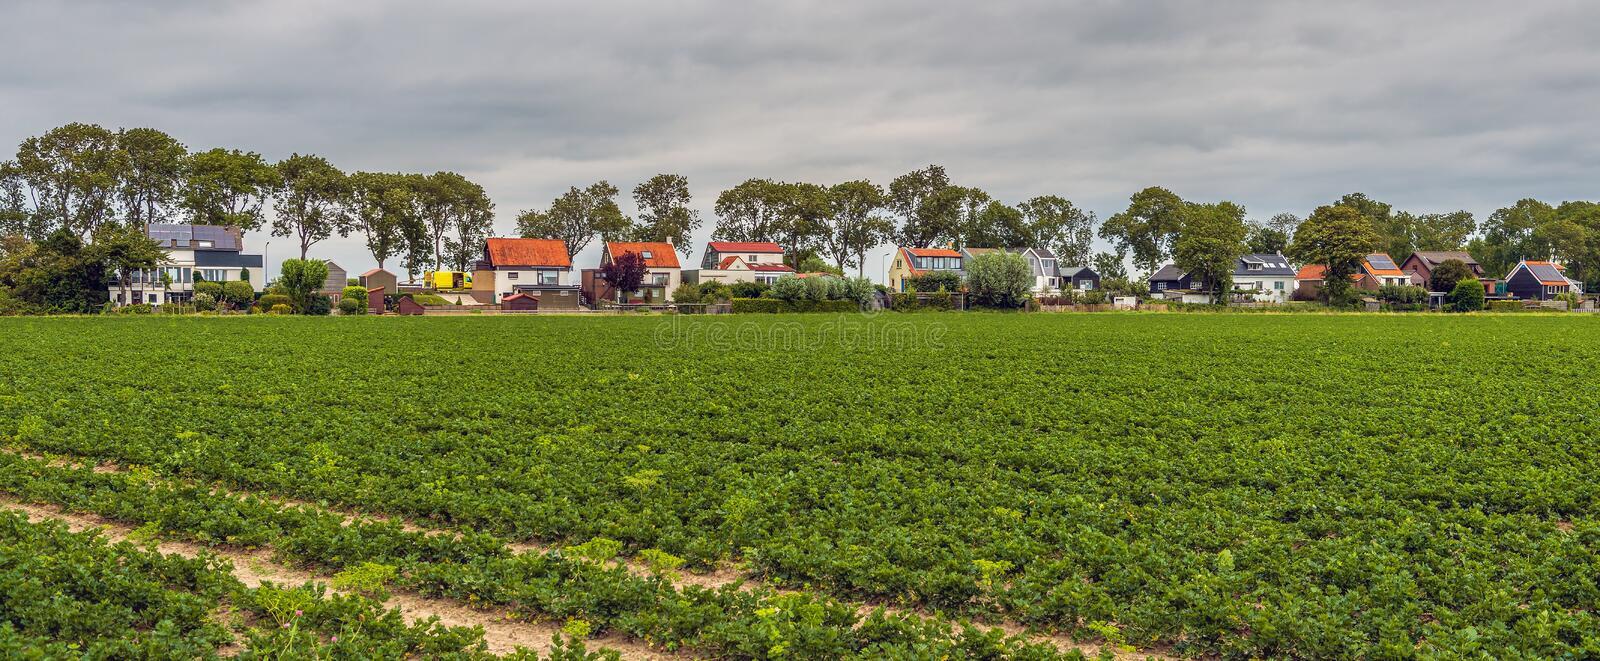 Large field with organically grown celery plants in long rows. Large field near the Dutch village of Zuid-Beijerland, South Holland, with organically grown stock photos